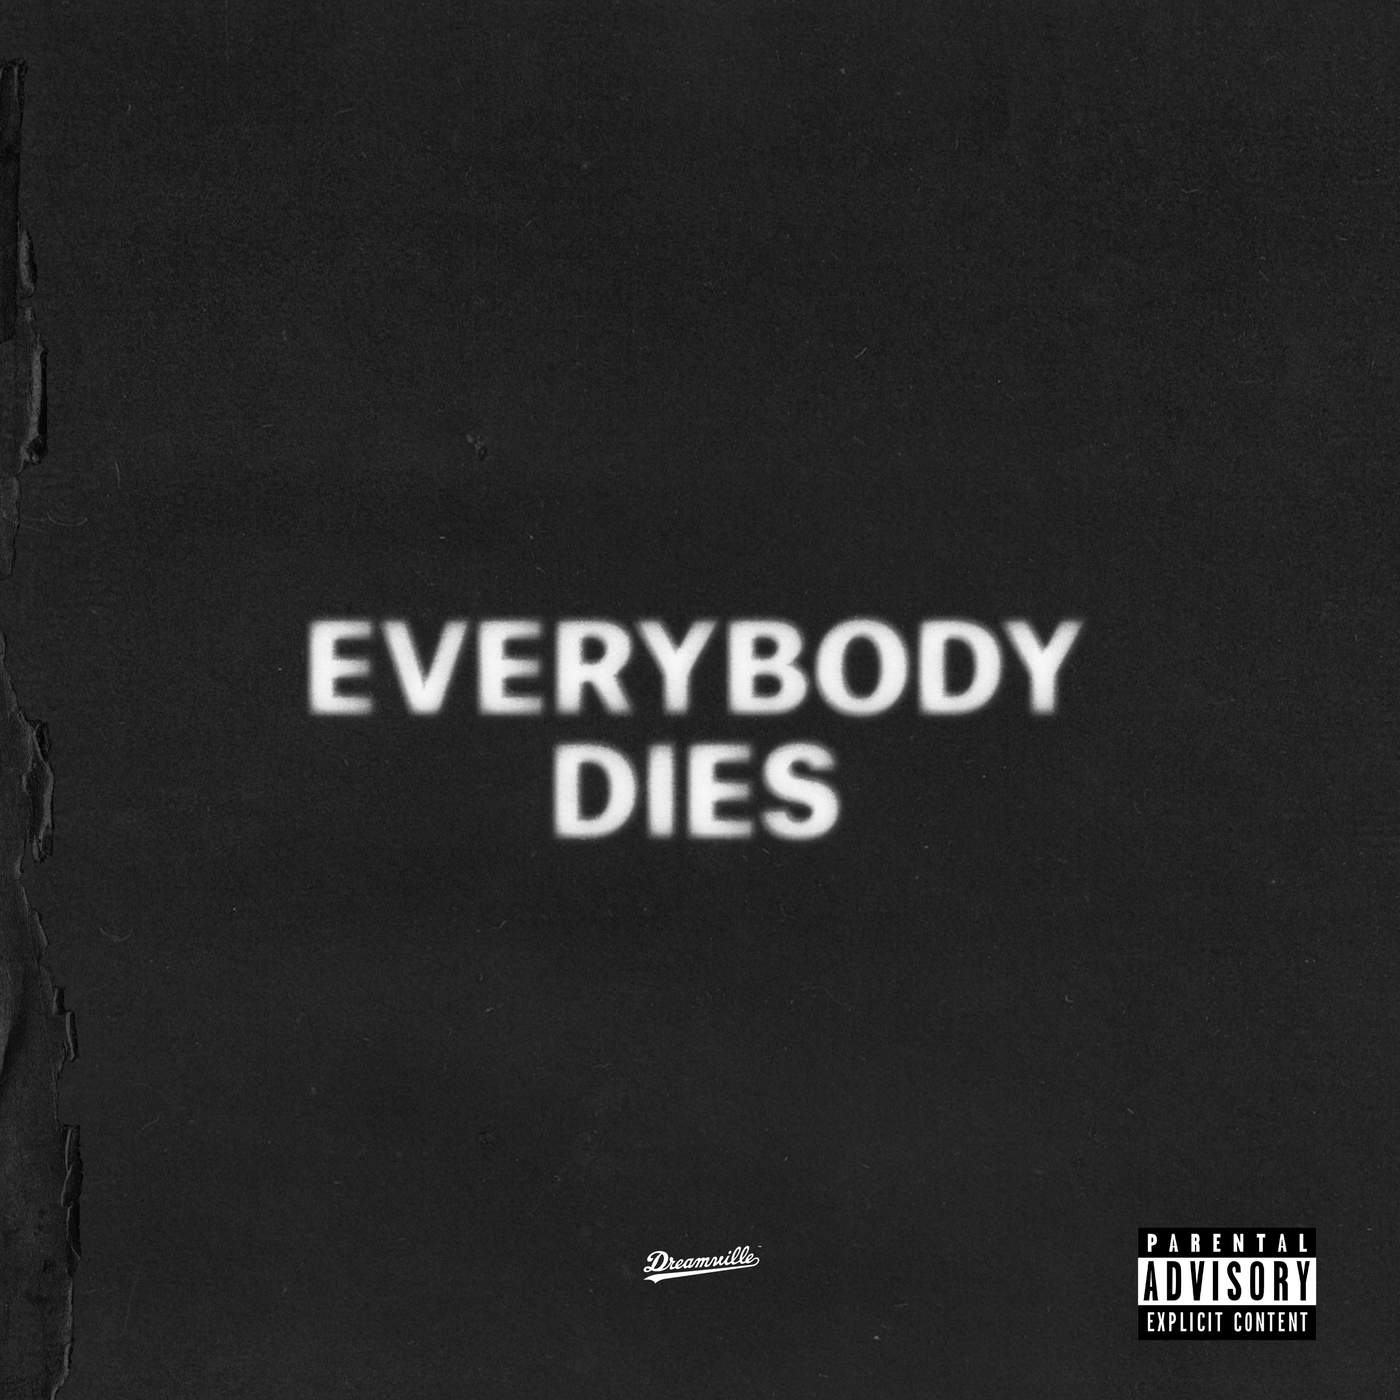 J. Cole - Everybody Dies - Single Cover